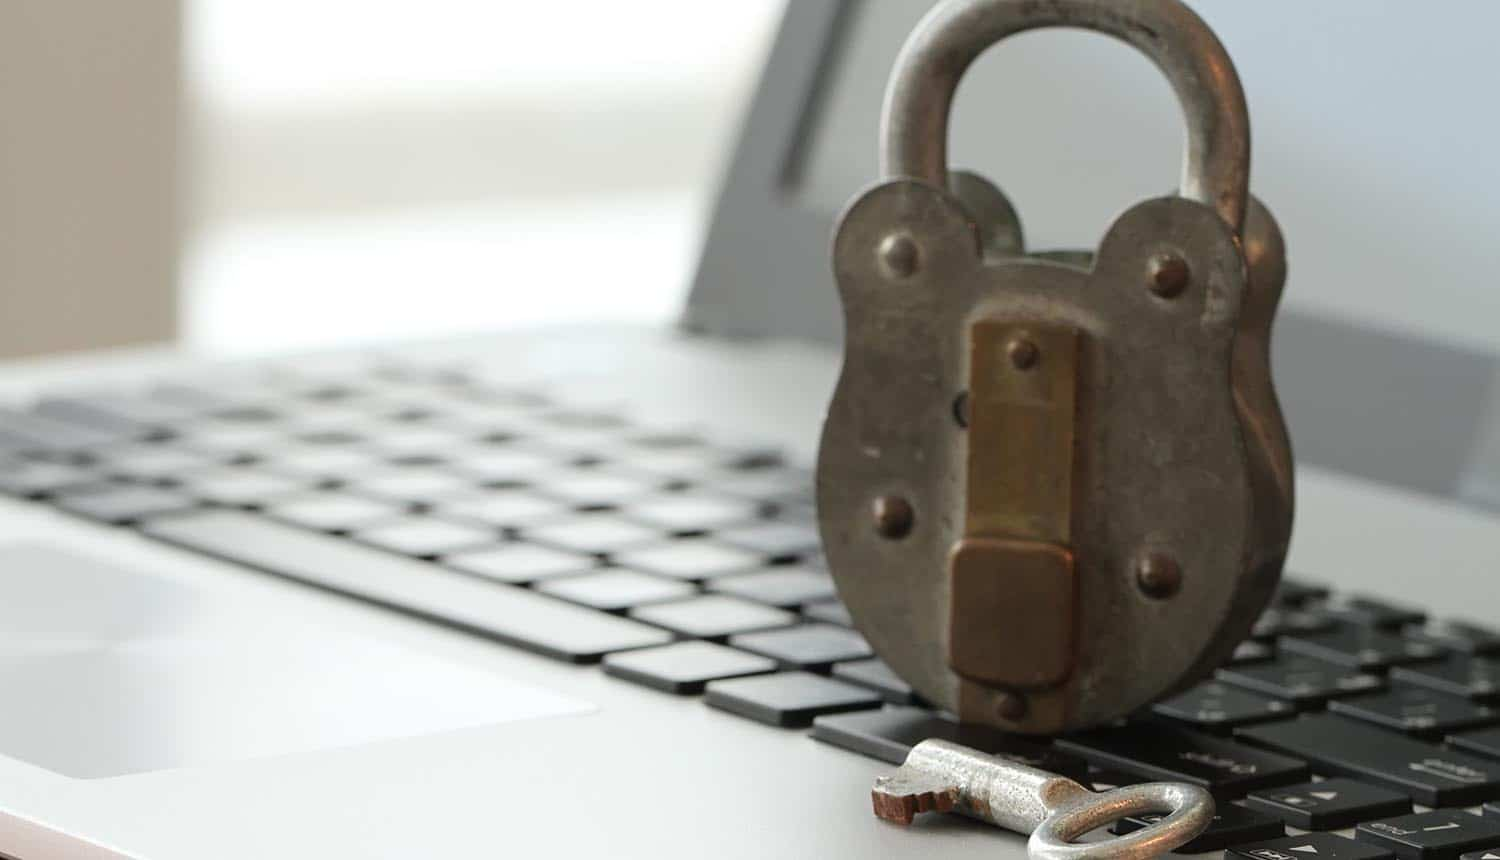 Old padlock and key on laptop computer keyboard showing the need for small businesses to stay safe online